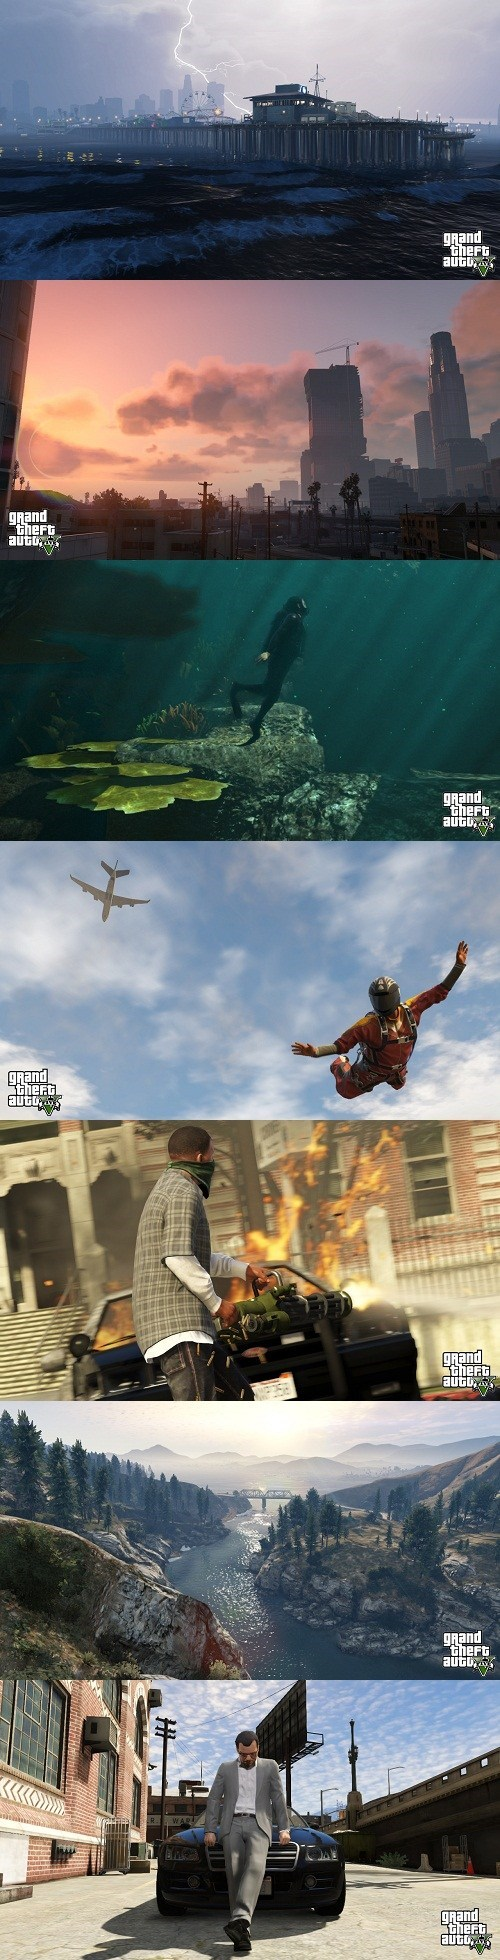 grand theft auto v,screenshots,video games,Rockstar Games